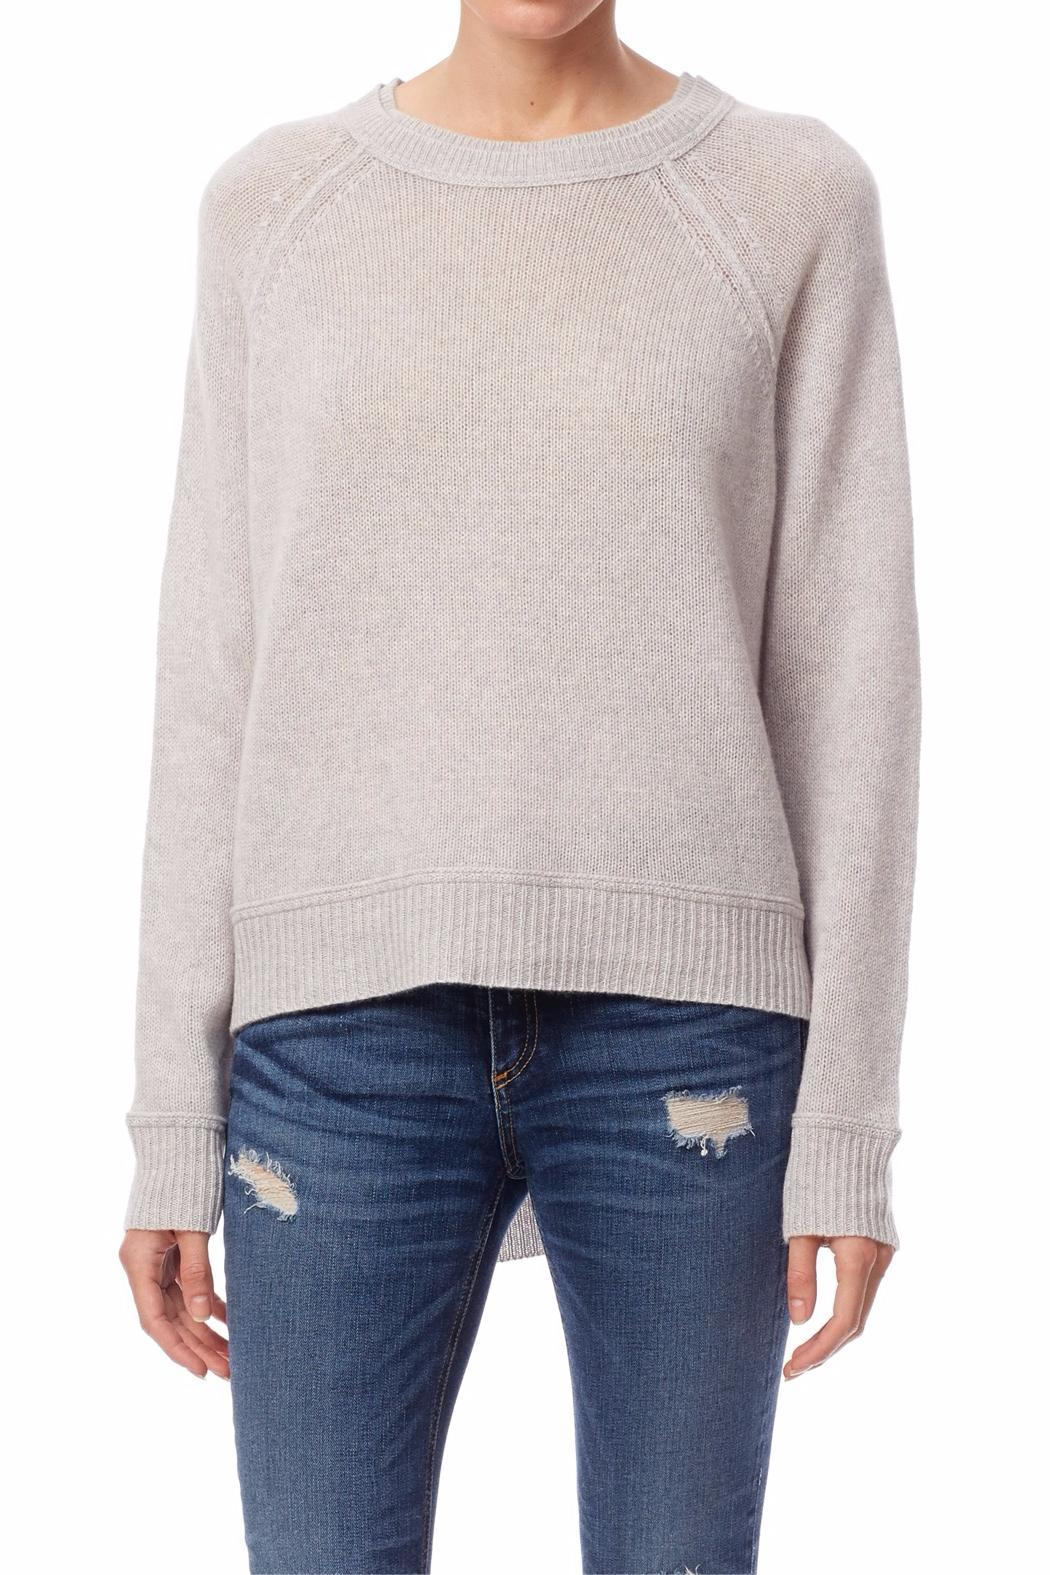 360 Cashmere Hartley Cashmere Sweater from Houston by RainTree ...